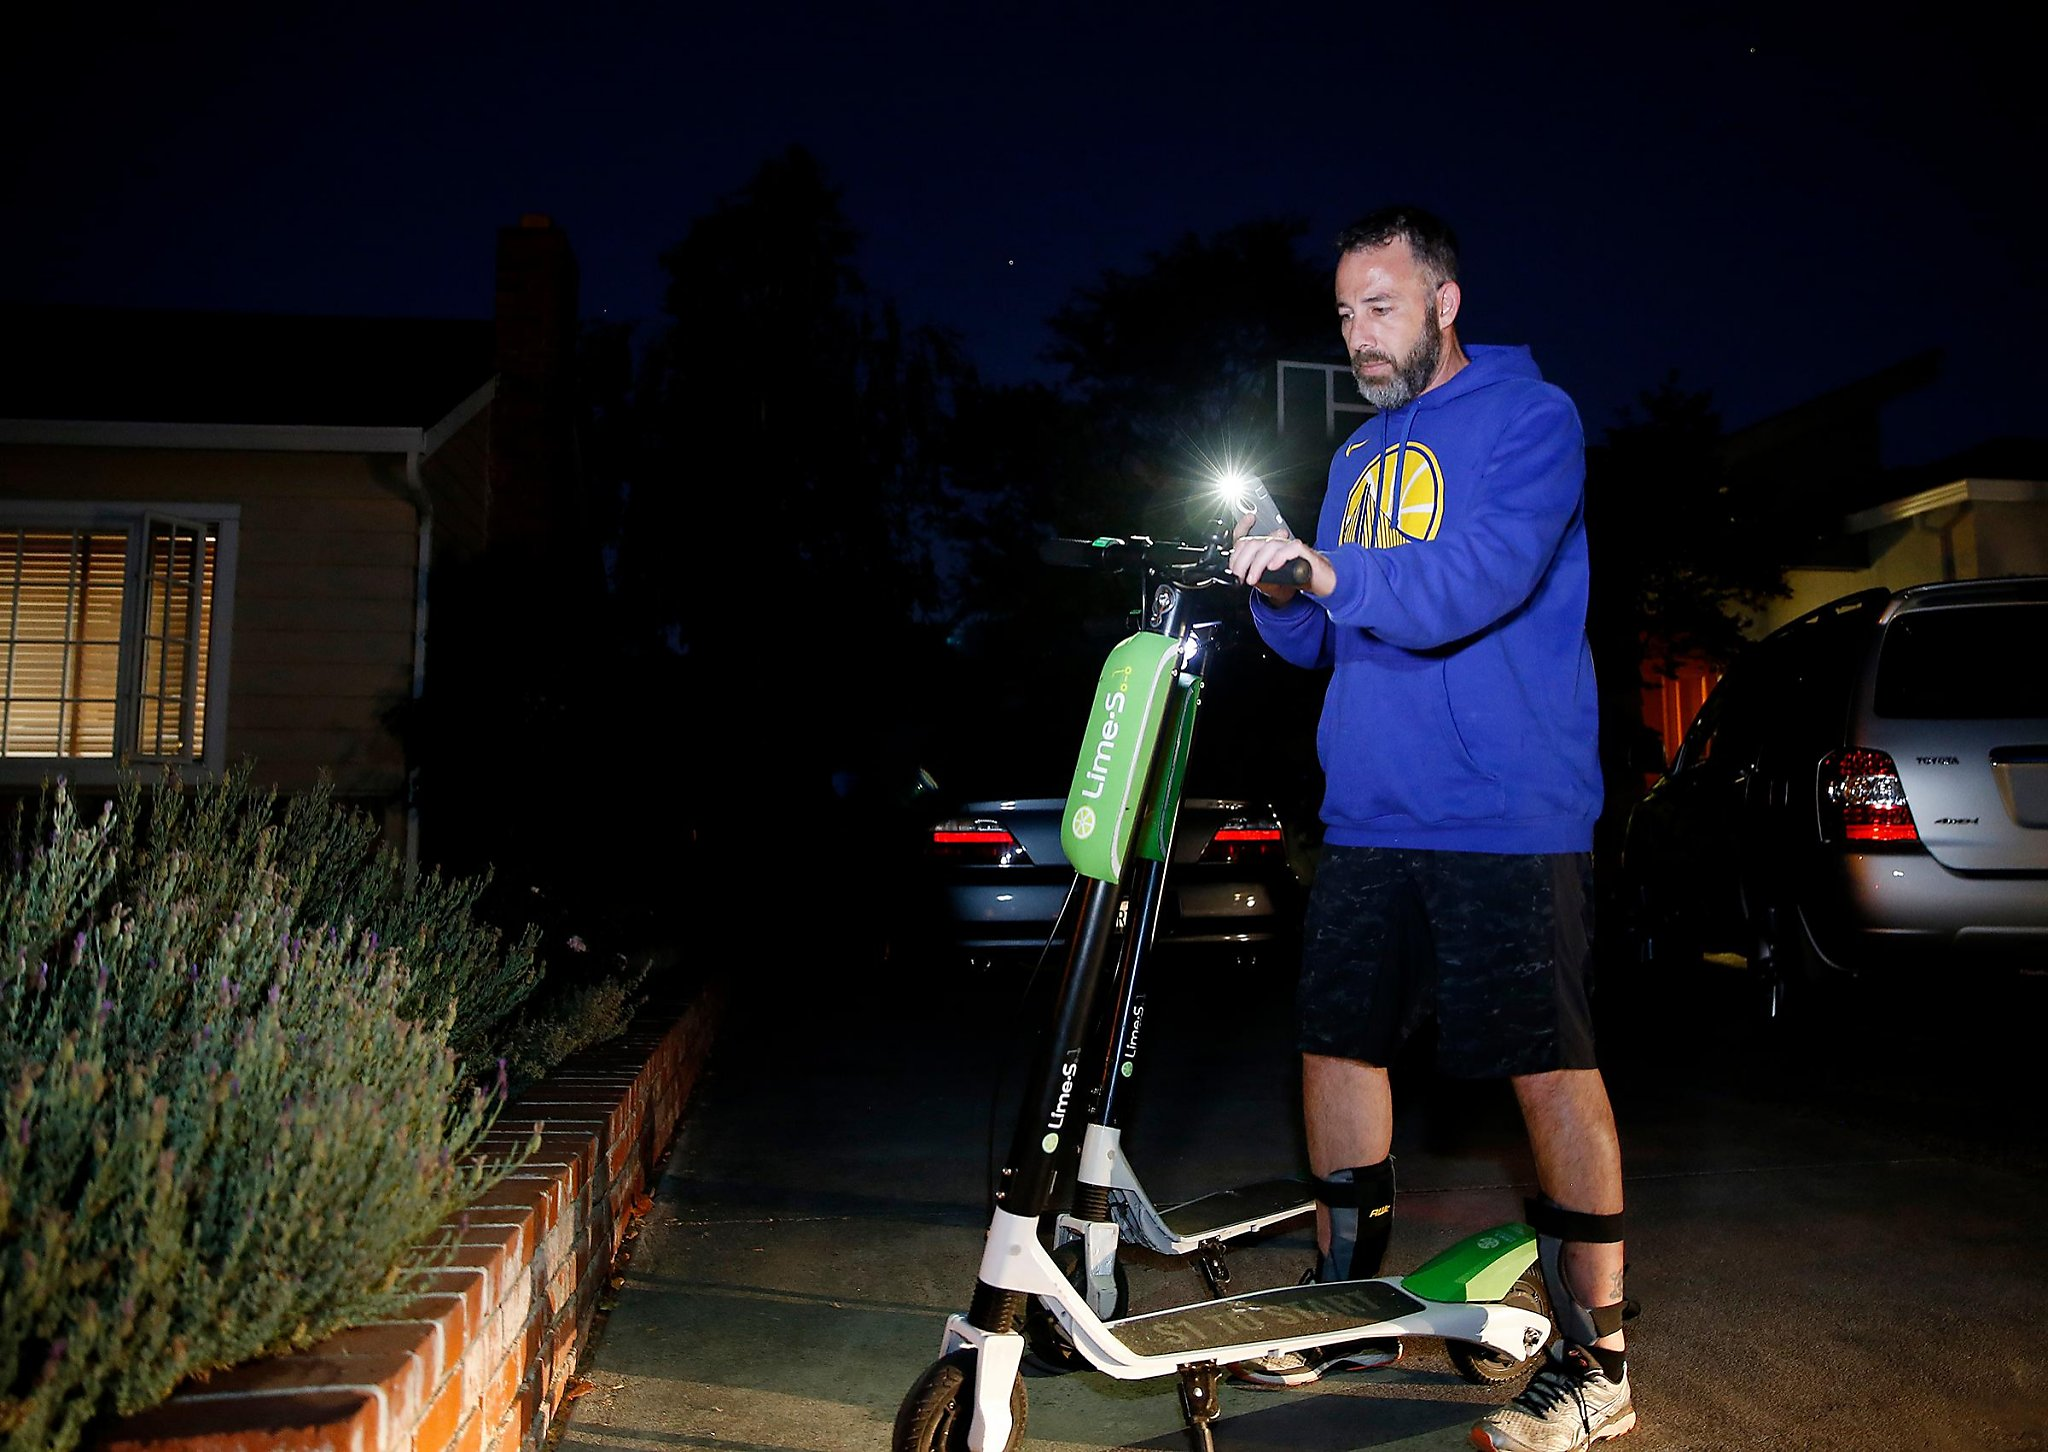 Scooter 'treasure hunt': Nighttime chargers make big money